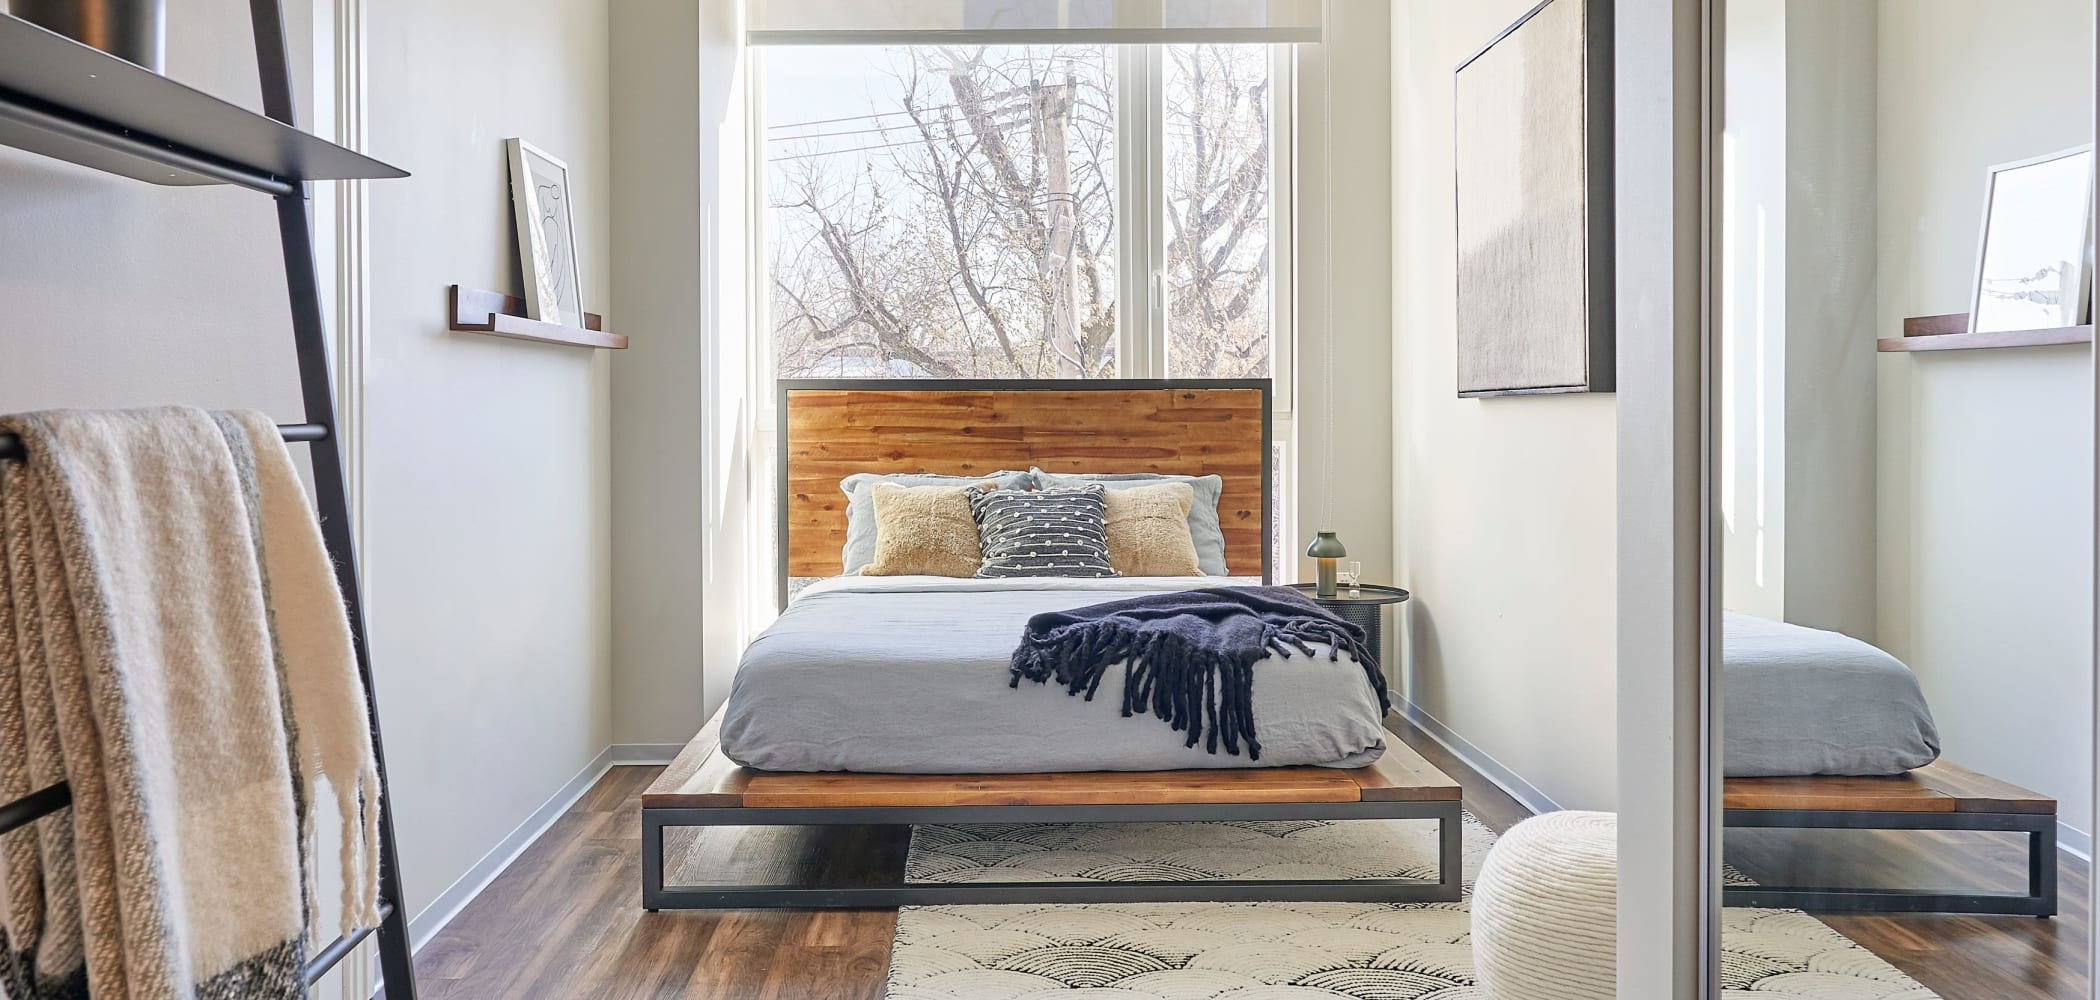 Bright, spacious bedroom at The Link Evanston in Evanston, Illinois